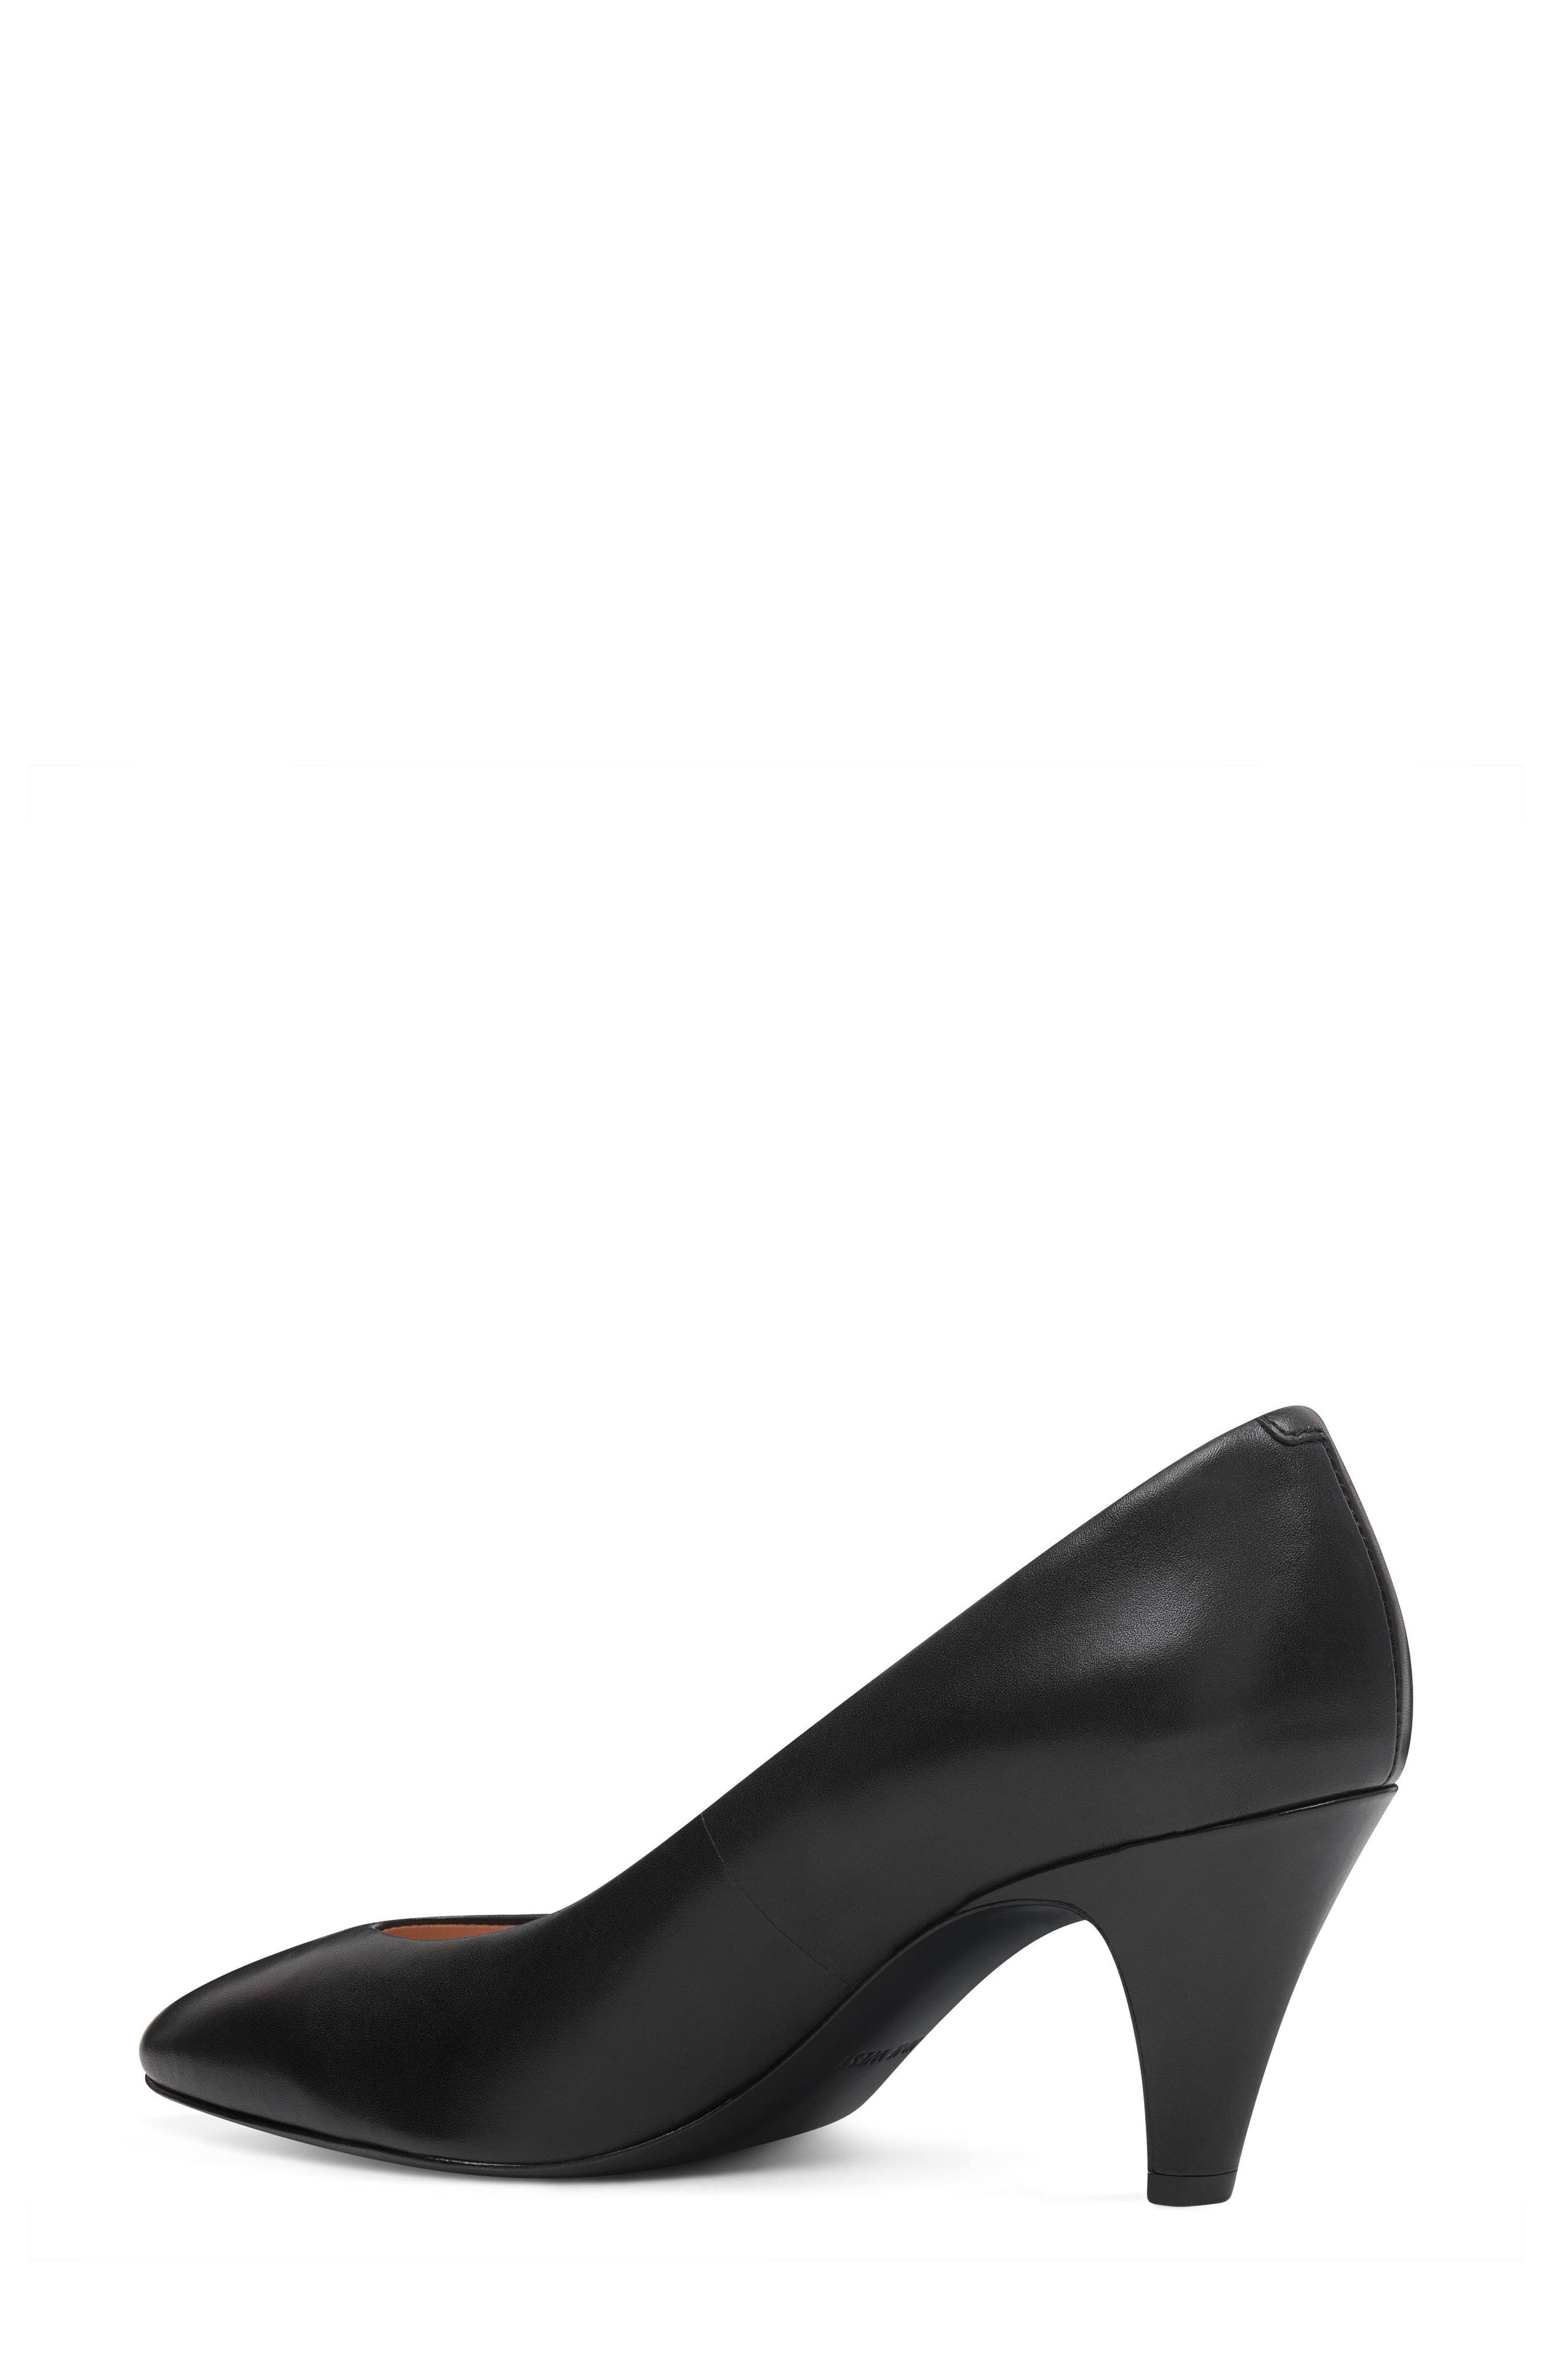 Faith - 40th Anniversary Capsule Collection Pump,                             Alternate thumbnail 2, color,                             BLACK LEATHER